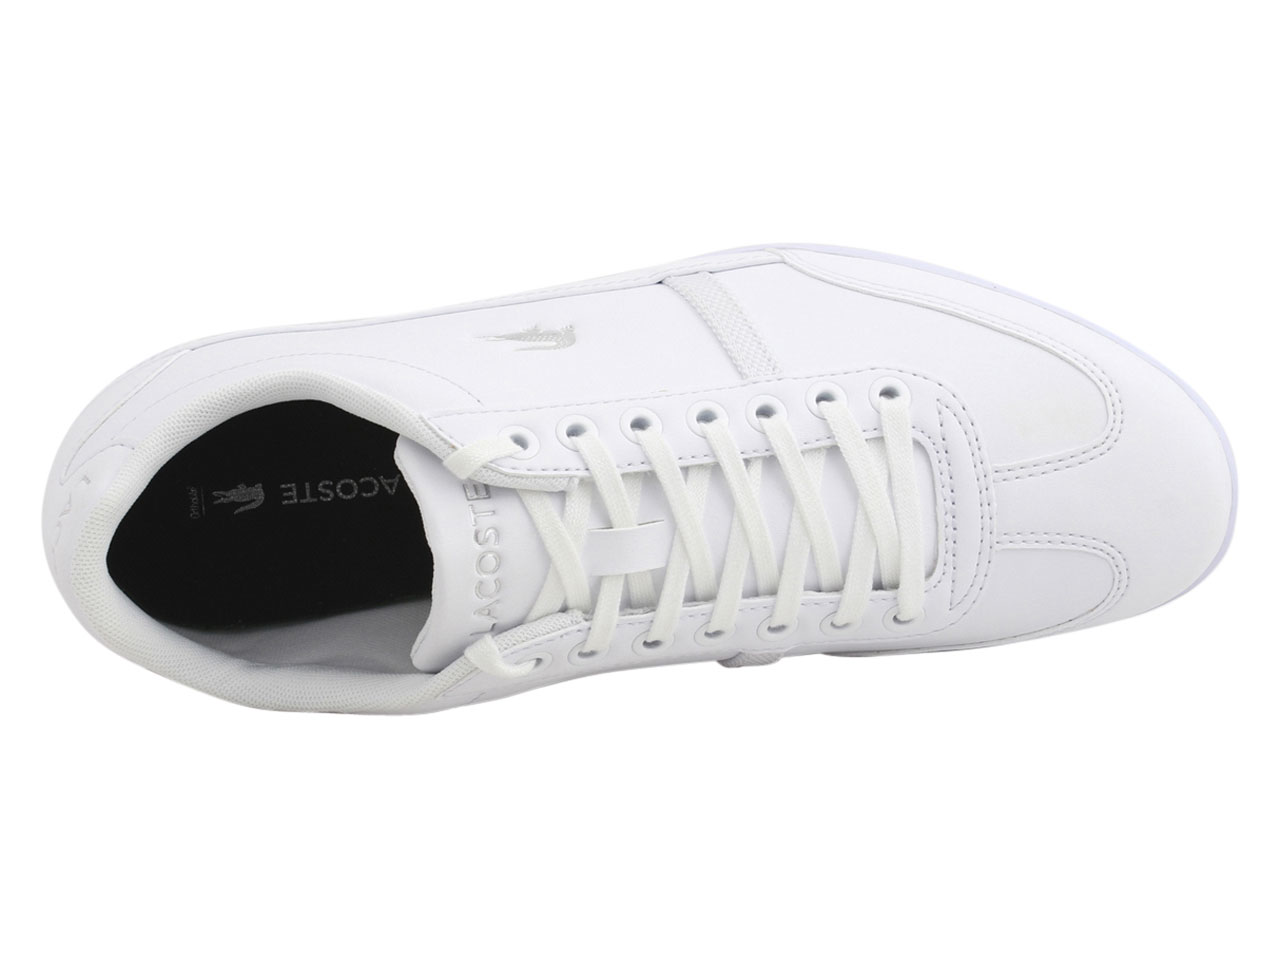 Lacoste-Men-039-s-Misano-Sport-118-Sneakers-Shoes thumbnail 24